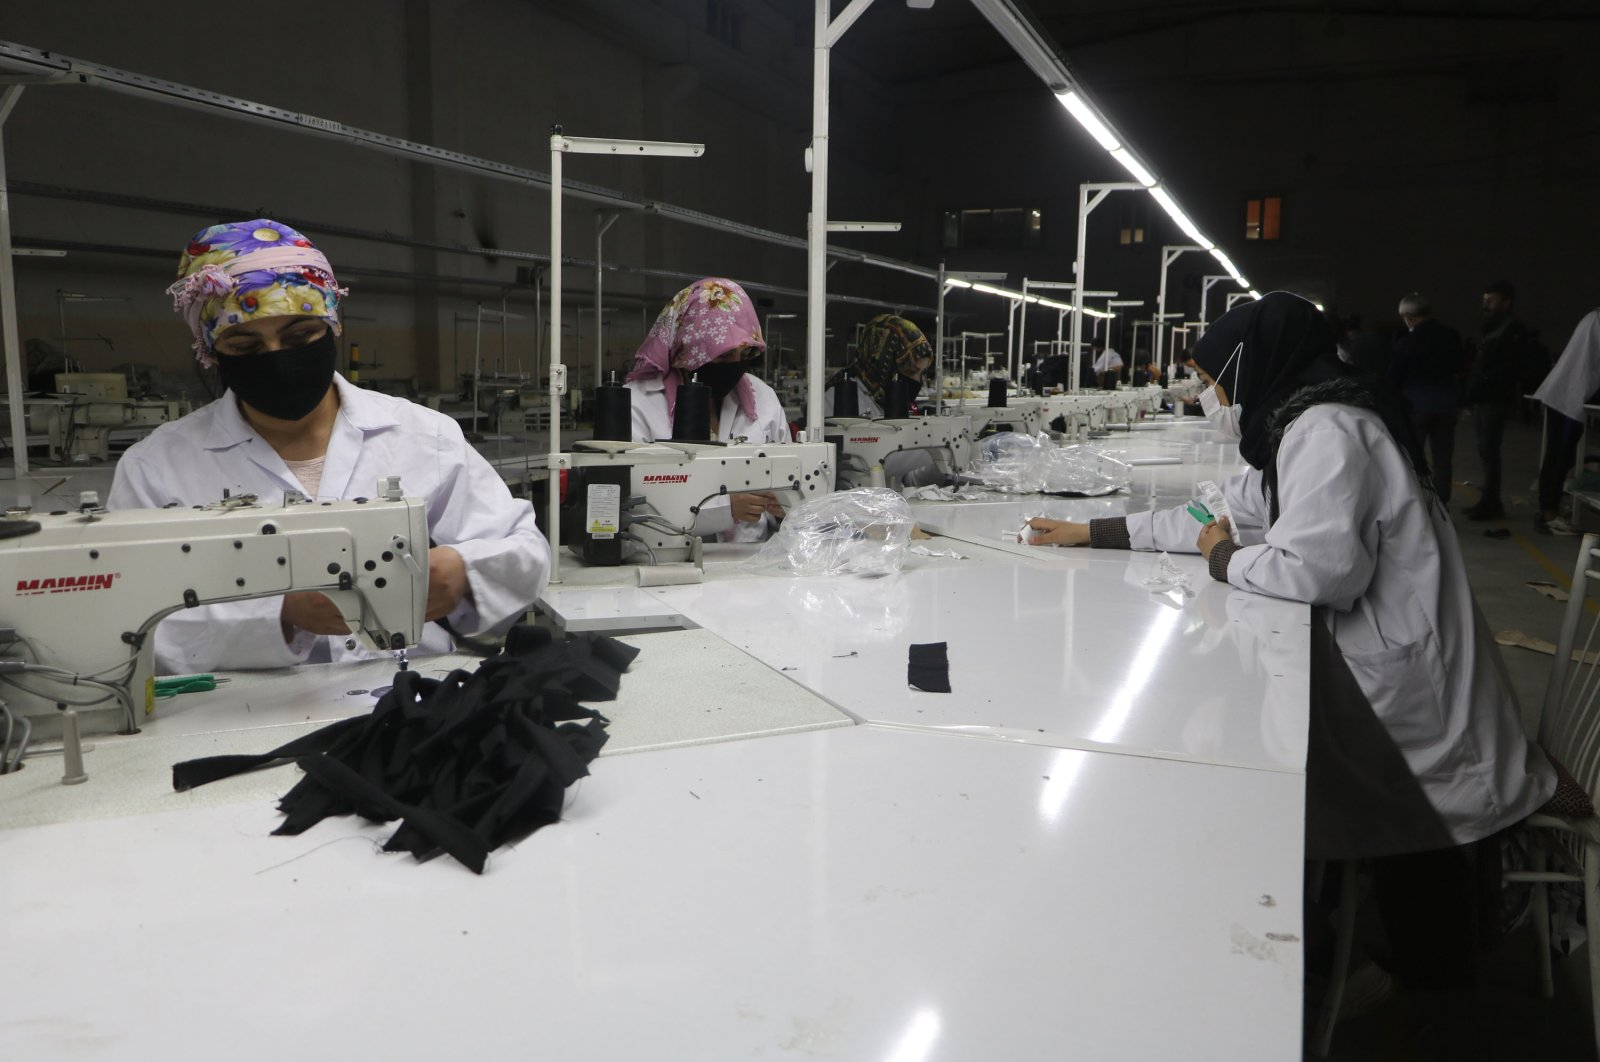 Laborers work at a textile factory in Turkey's Hakkari province, May 6, 2021. (DHA Photo)